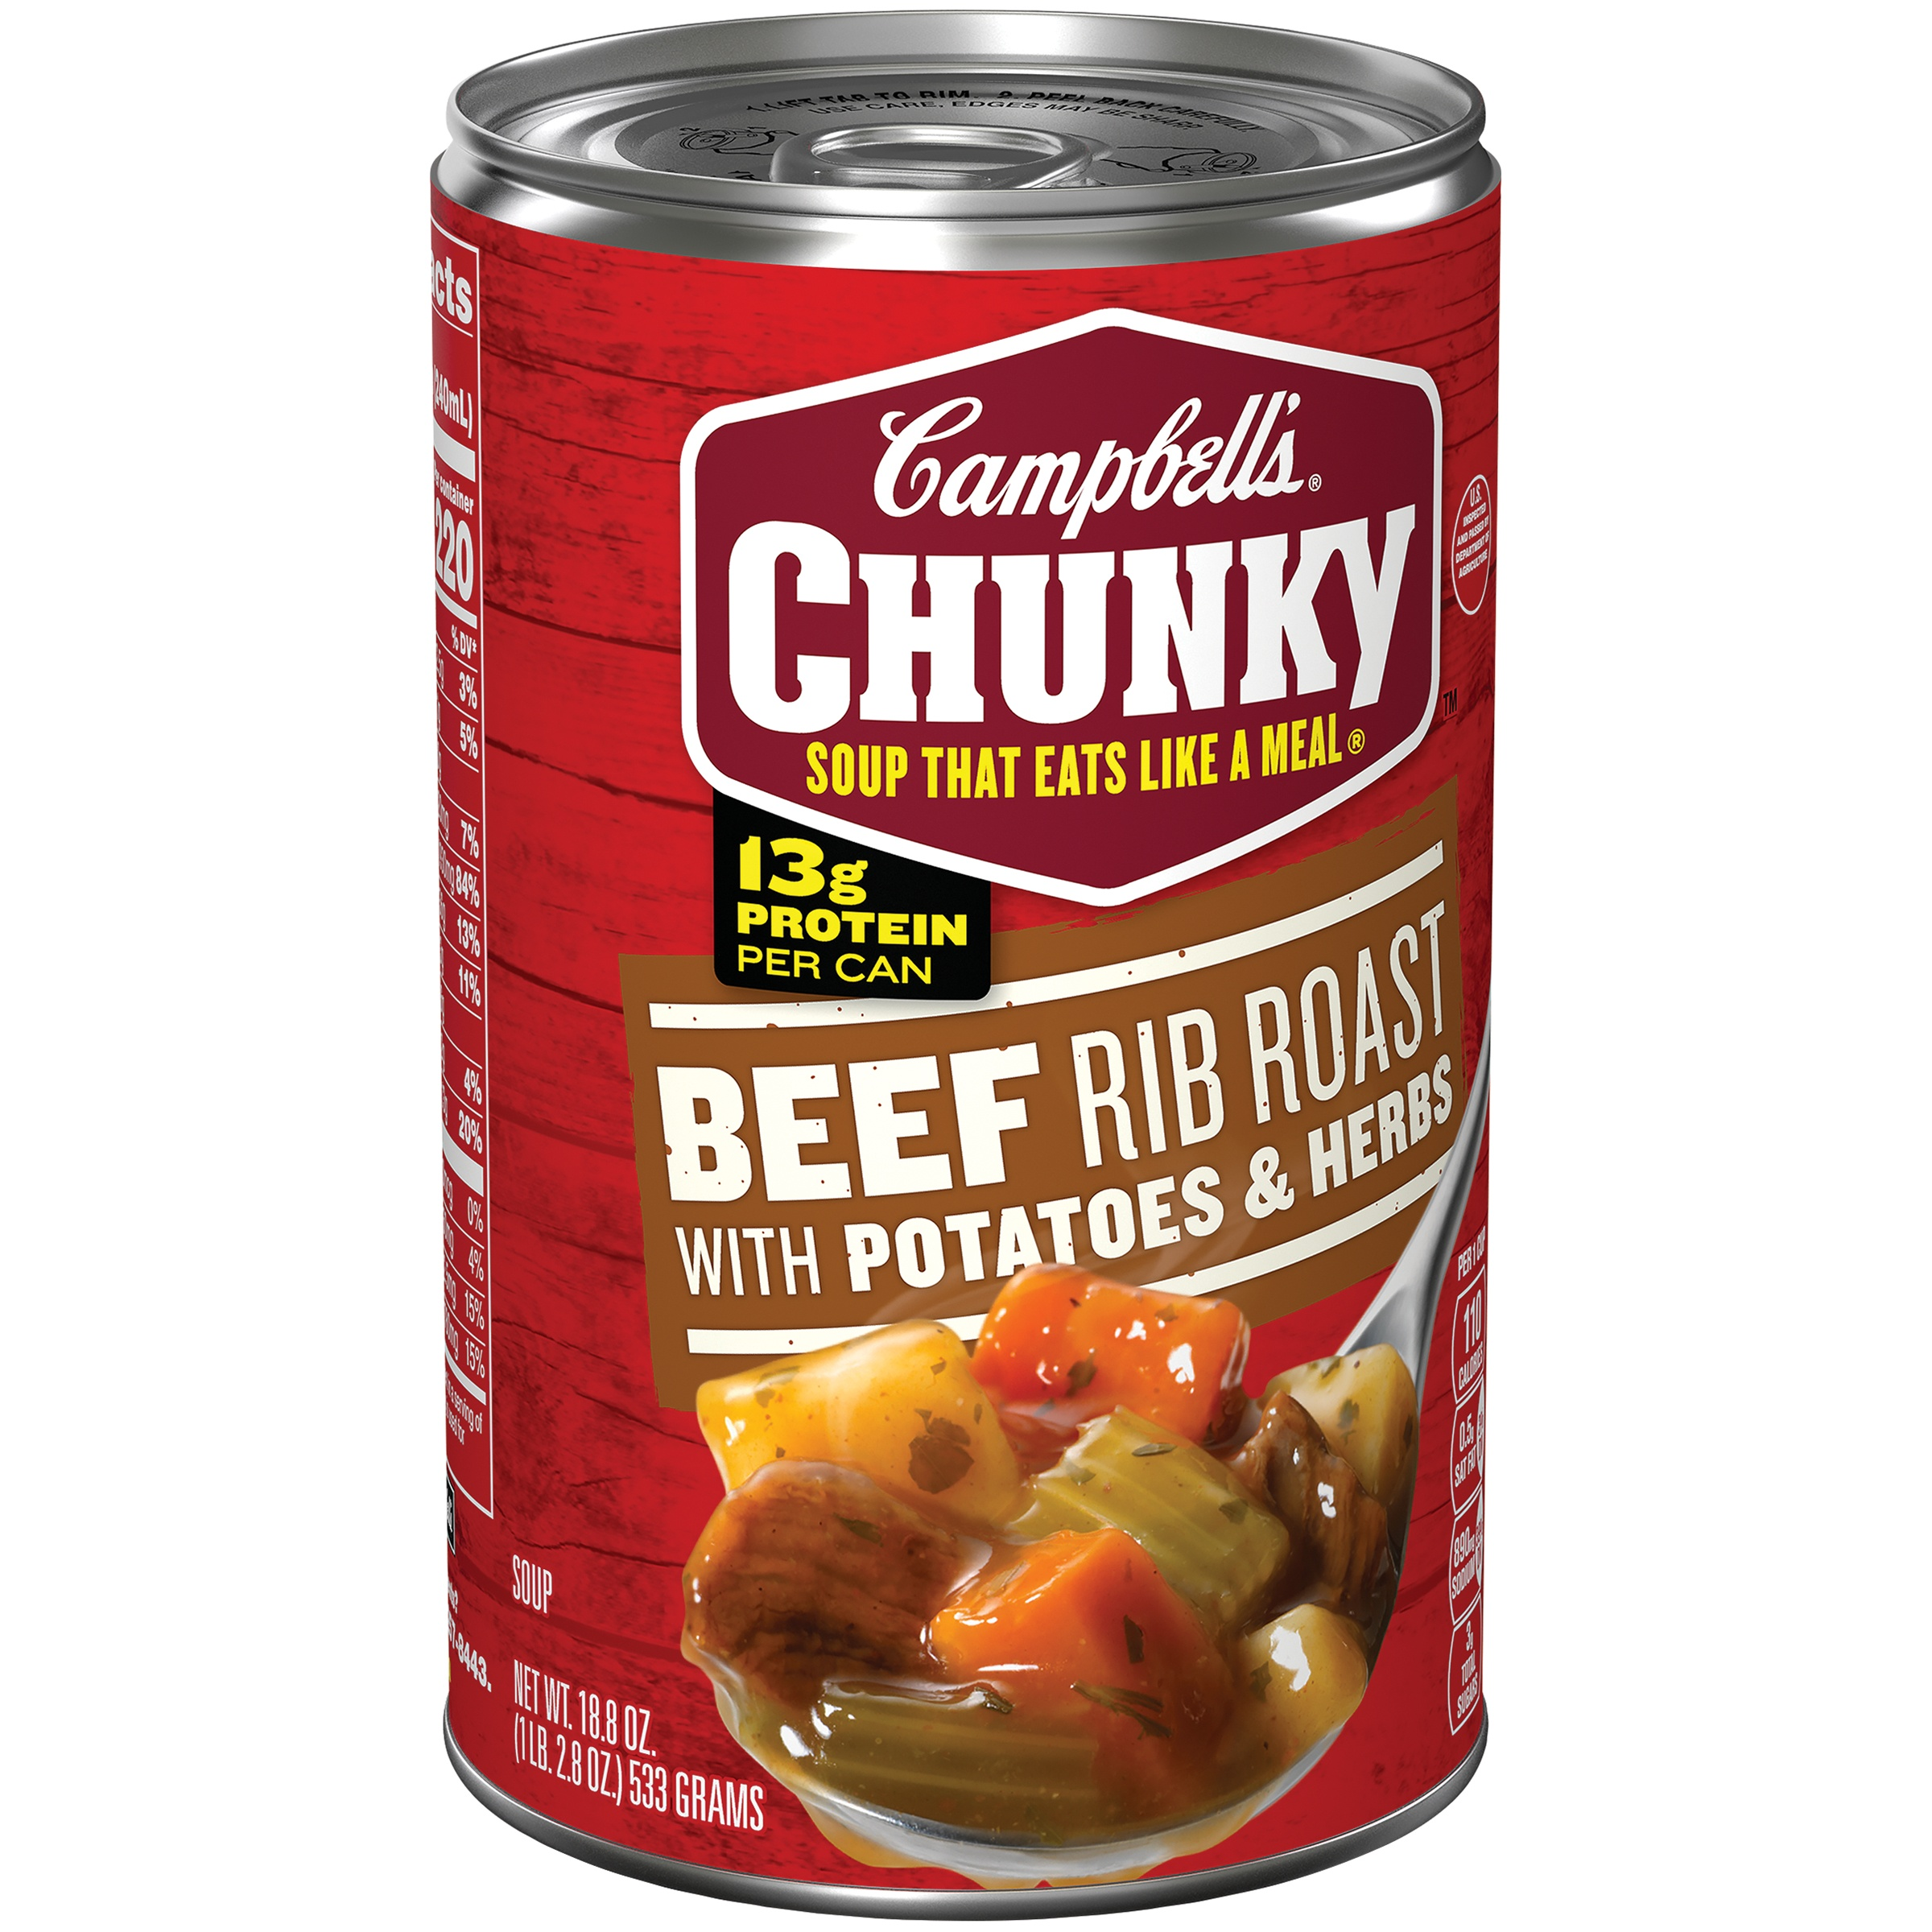 Campbell's Chunky Beef Rib Roast with Potatoes & Herbs Soup, 18.8 oz. by Campbell Soup Company